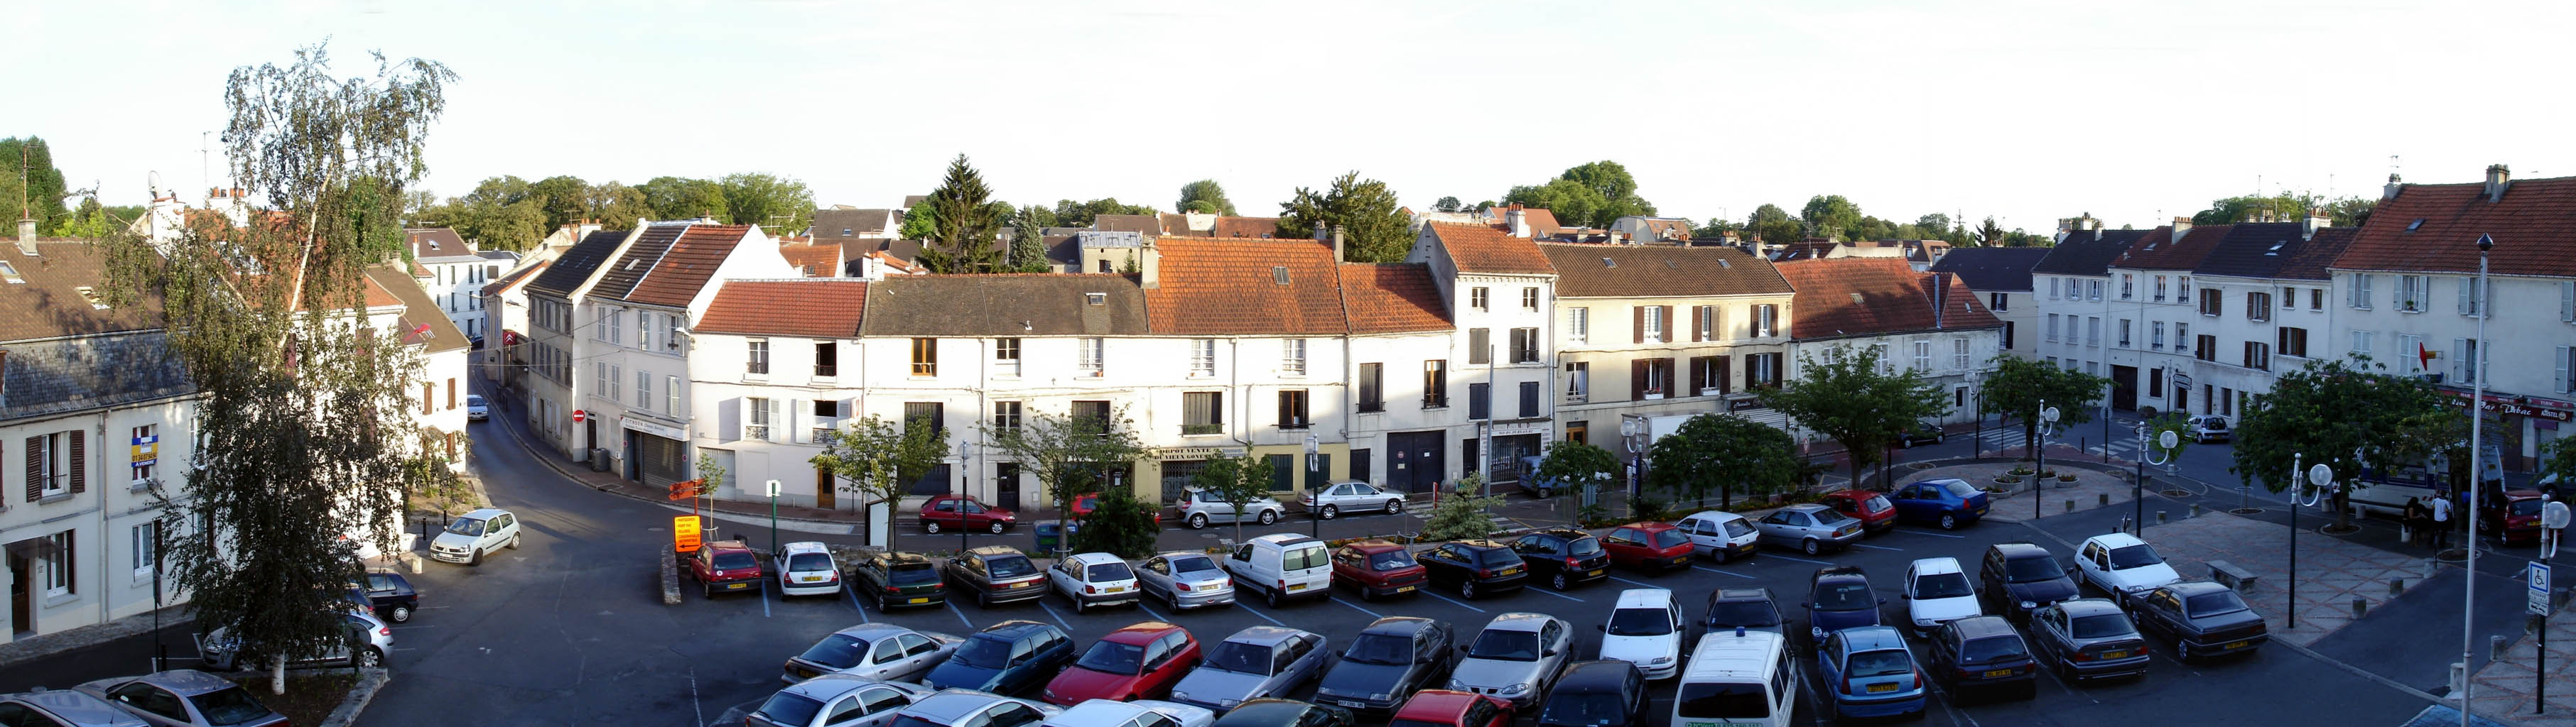 File Gonesse - Place du 8 Mai 1945 - panoramique.jpg - Wikimedia Commons 8218ac2a47b1